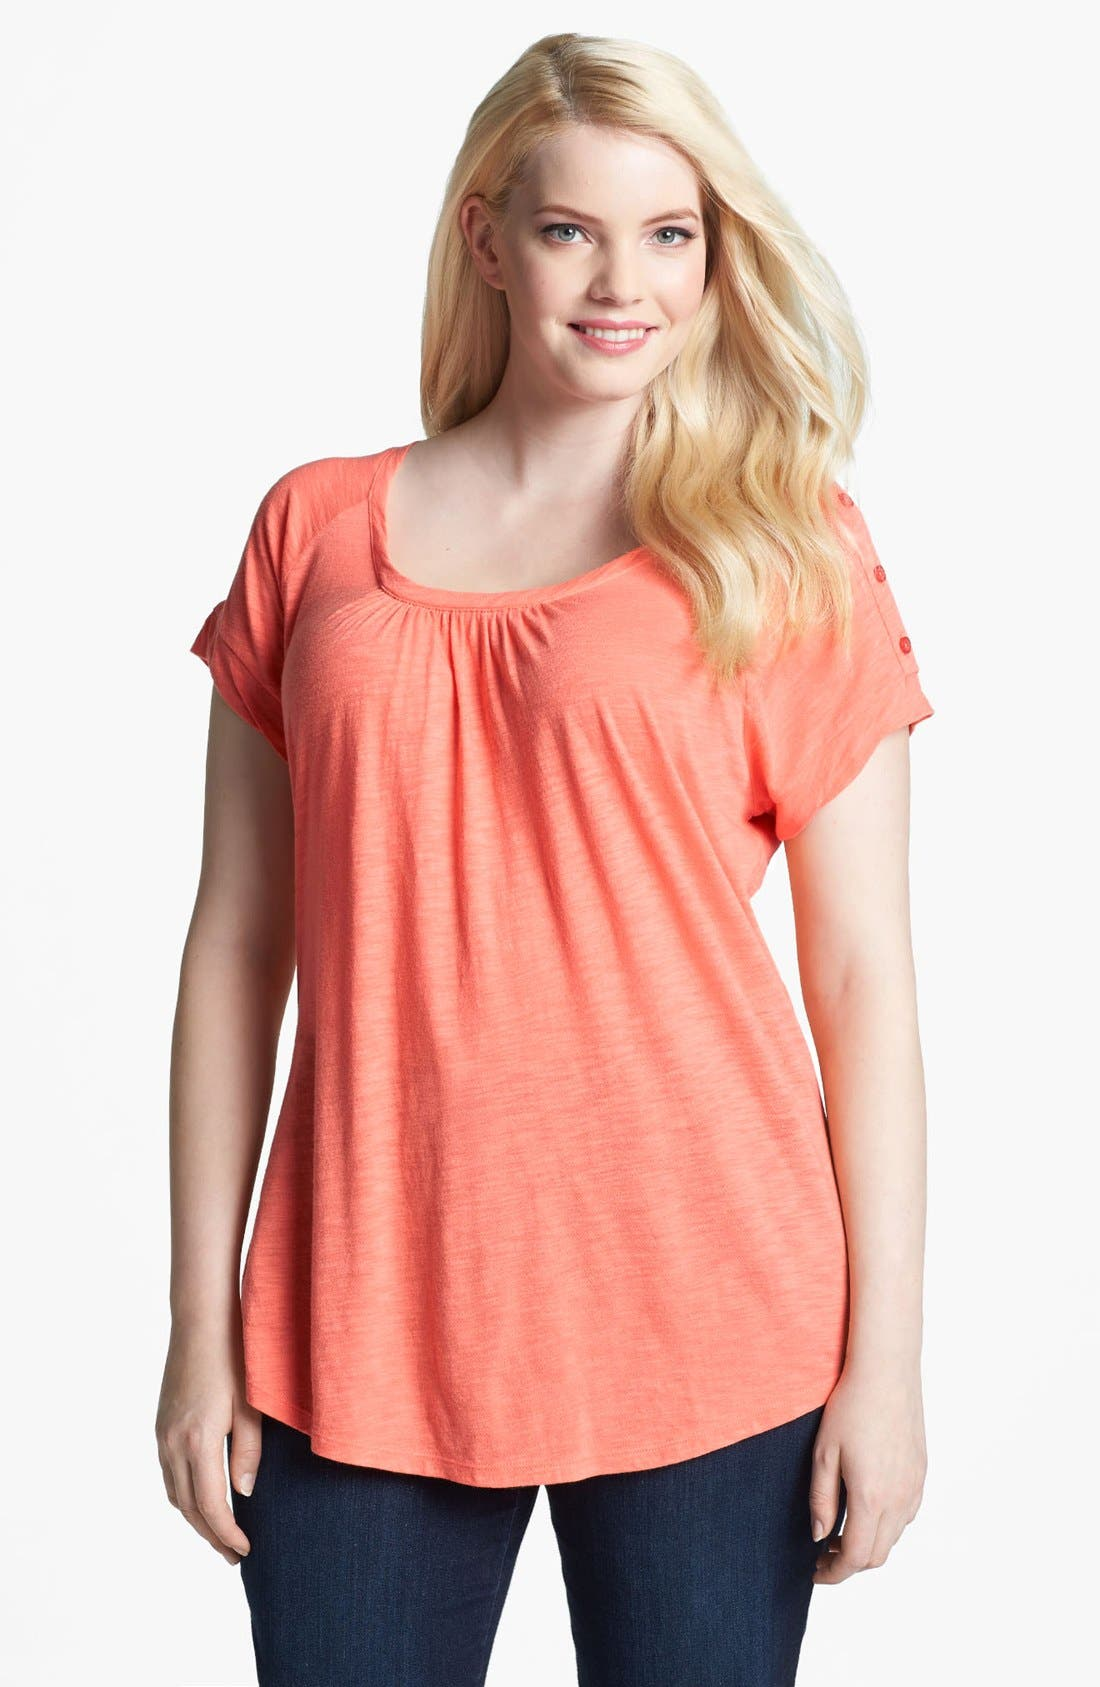 Alternate Image 1 Selected - Lucky Brand 'Alanna' Button Detail Top (Plus)